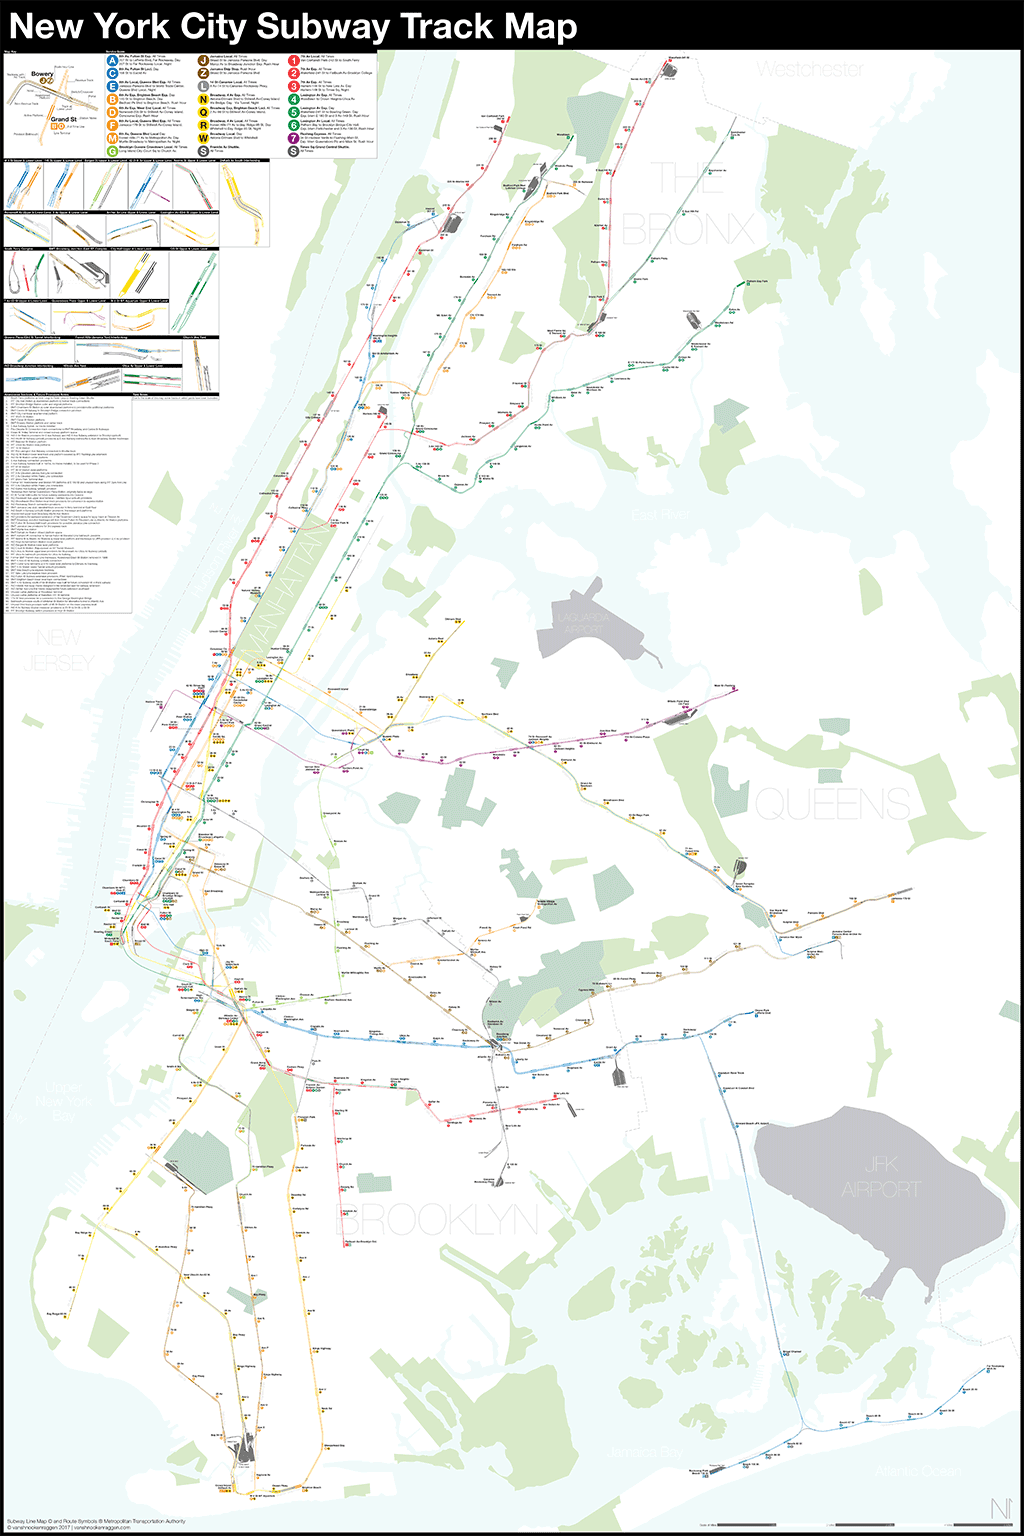 New York Subway Map Future.A Complete And Geographically Accurate Nyc Subway Track Map